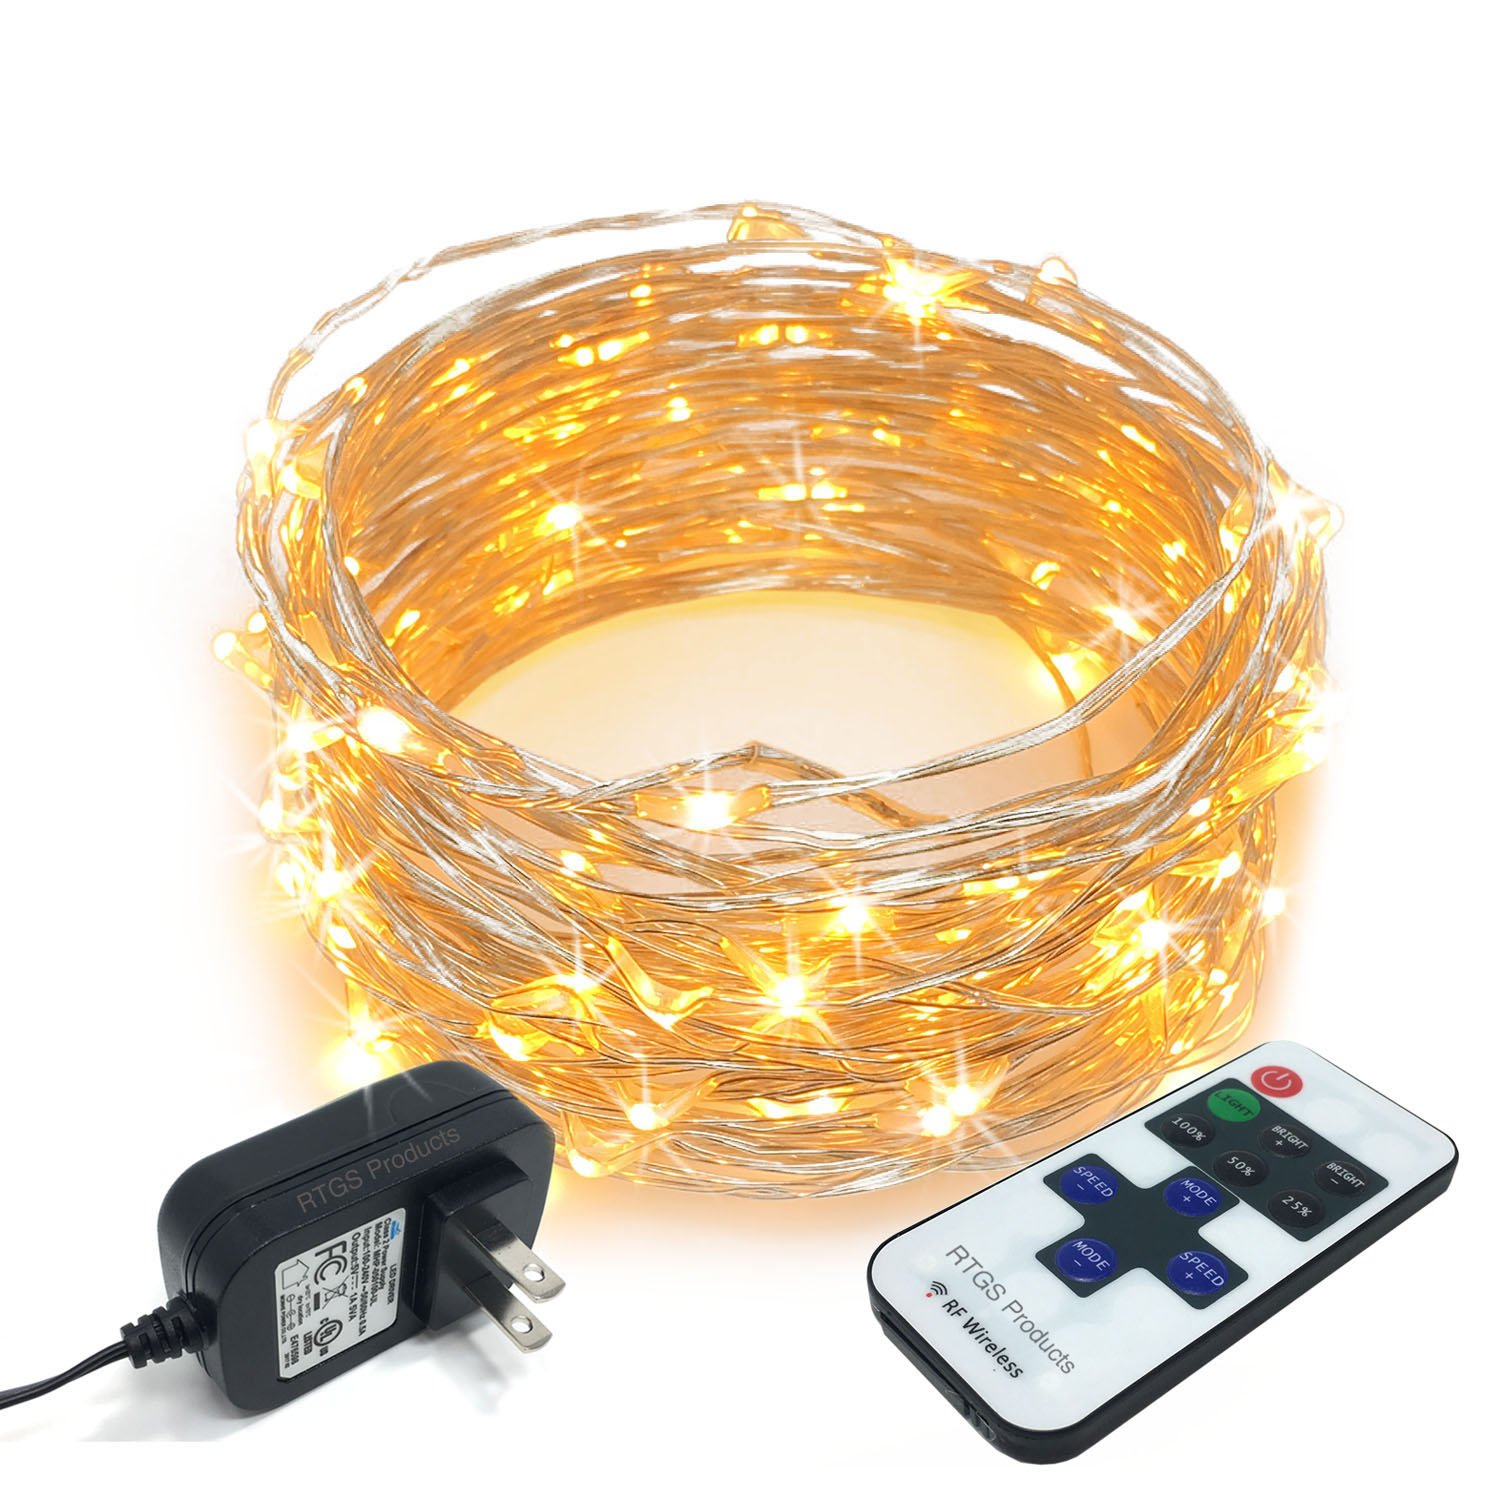 RTGS 100 LEDs String Lights Plug-in on 32 Feet Long Silver Color Wire, Indoor and Outdoor Use (Warm White Color 100 LEDs 32 FEET Remote and Functions)